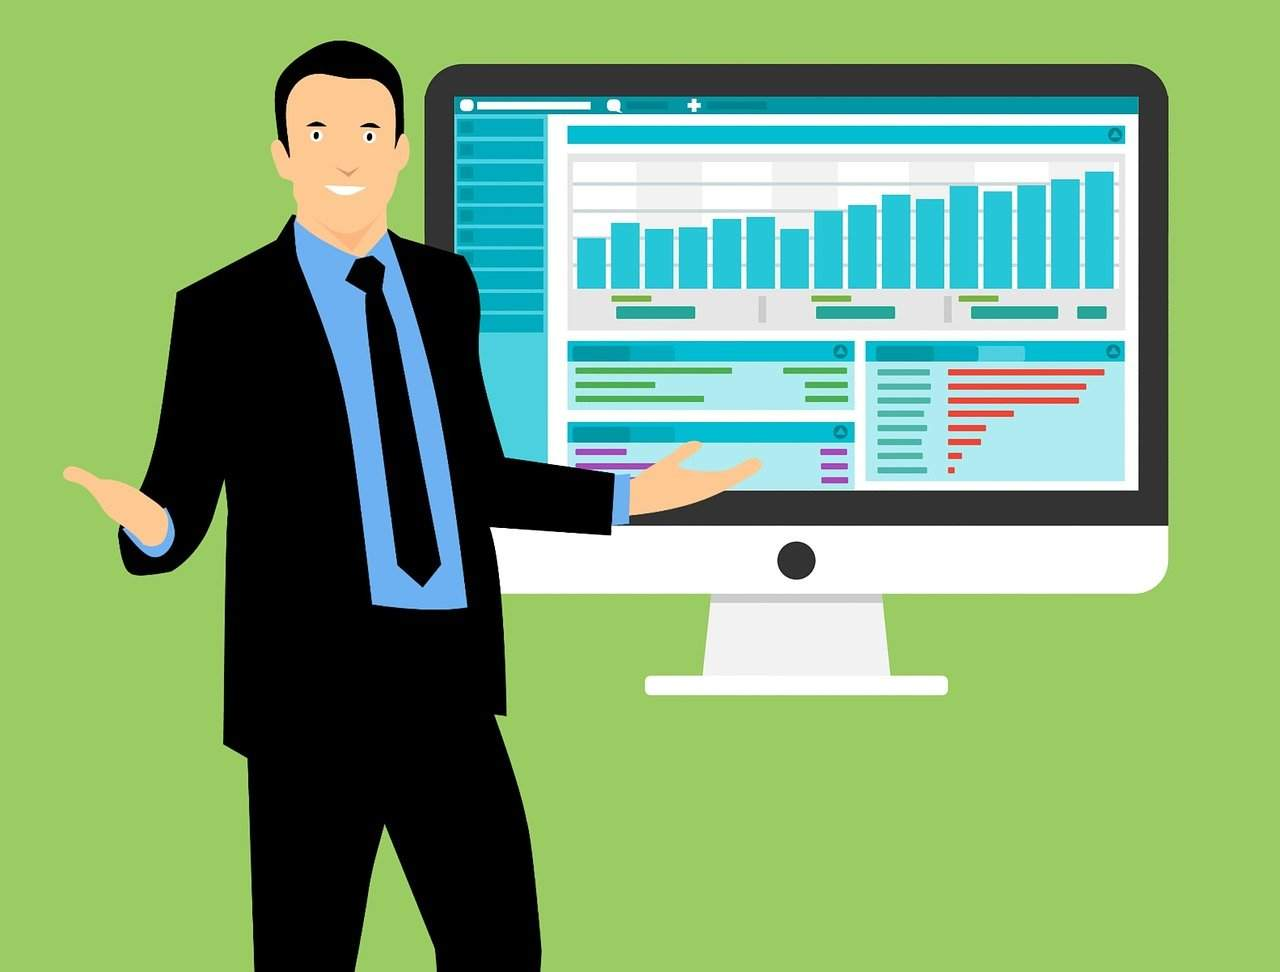 Stock Trading - How to trade for profits in the Stock Market Image